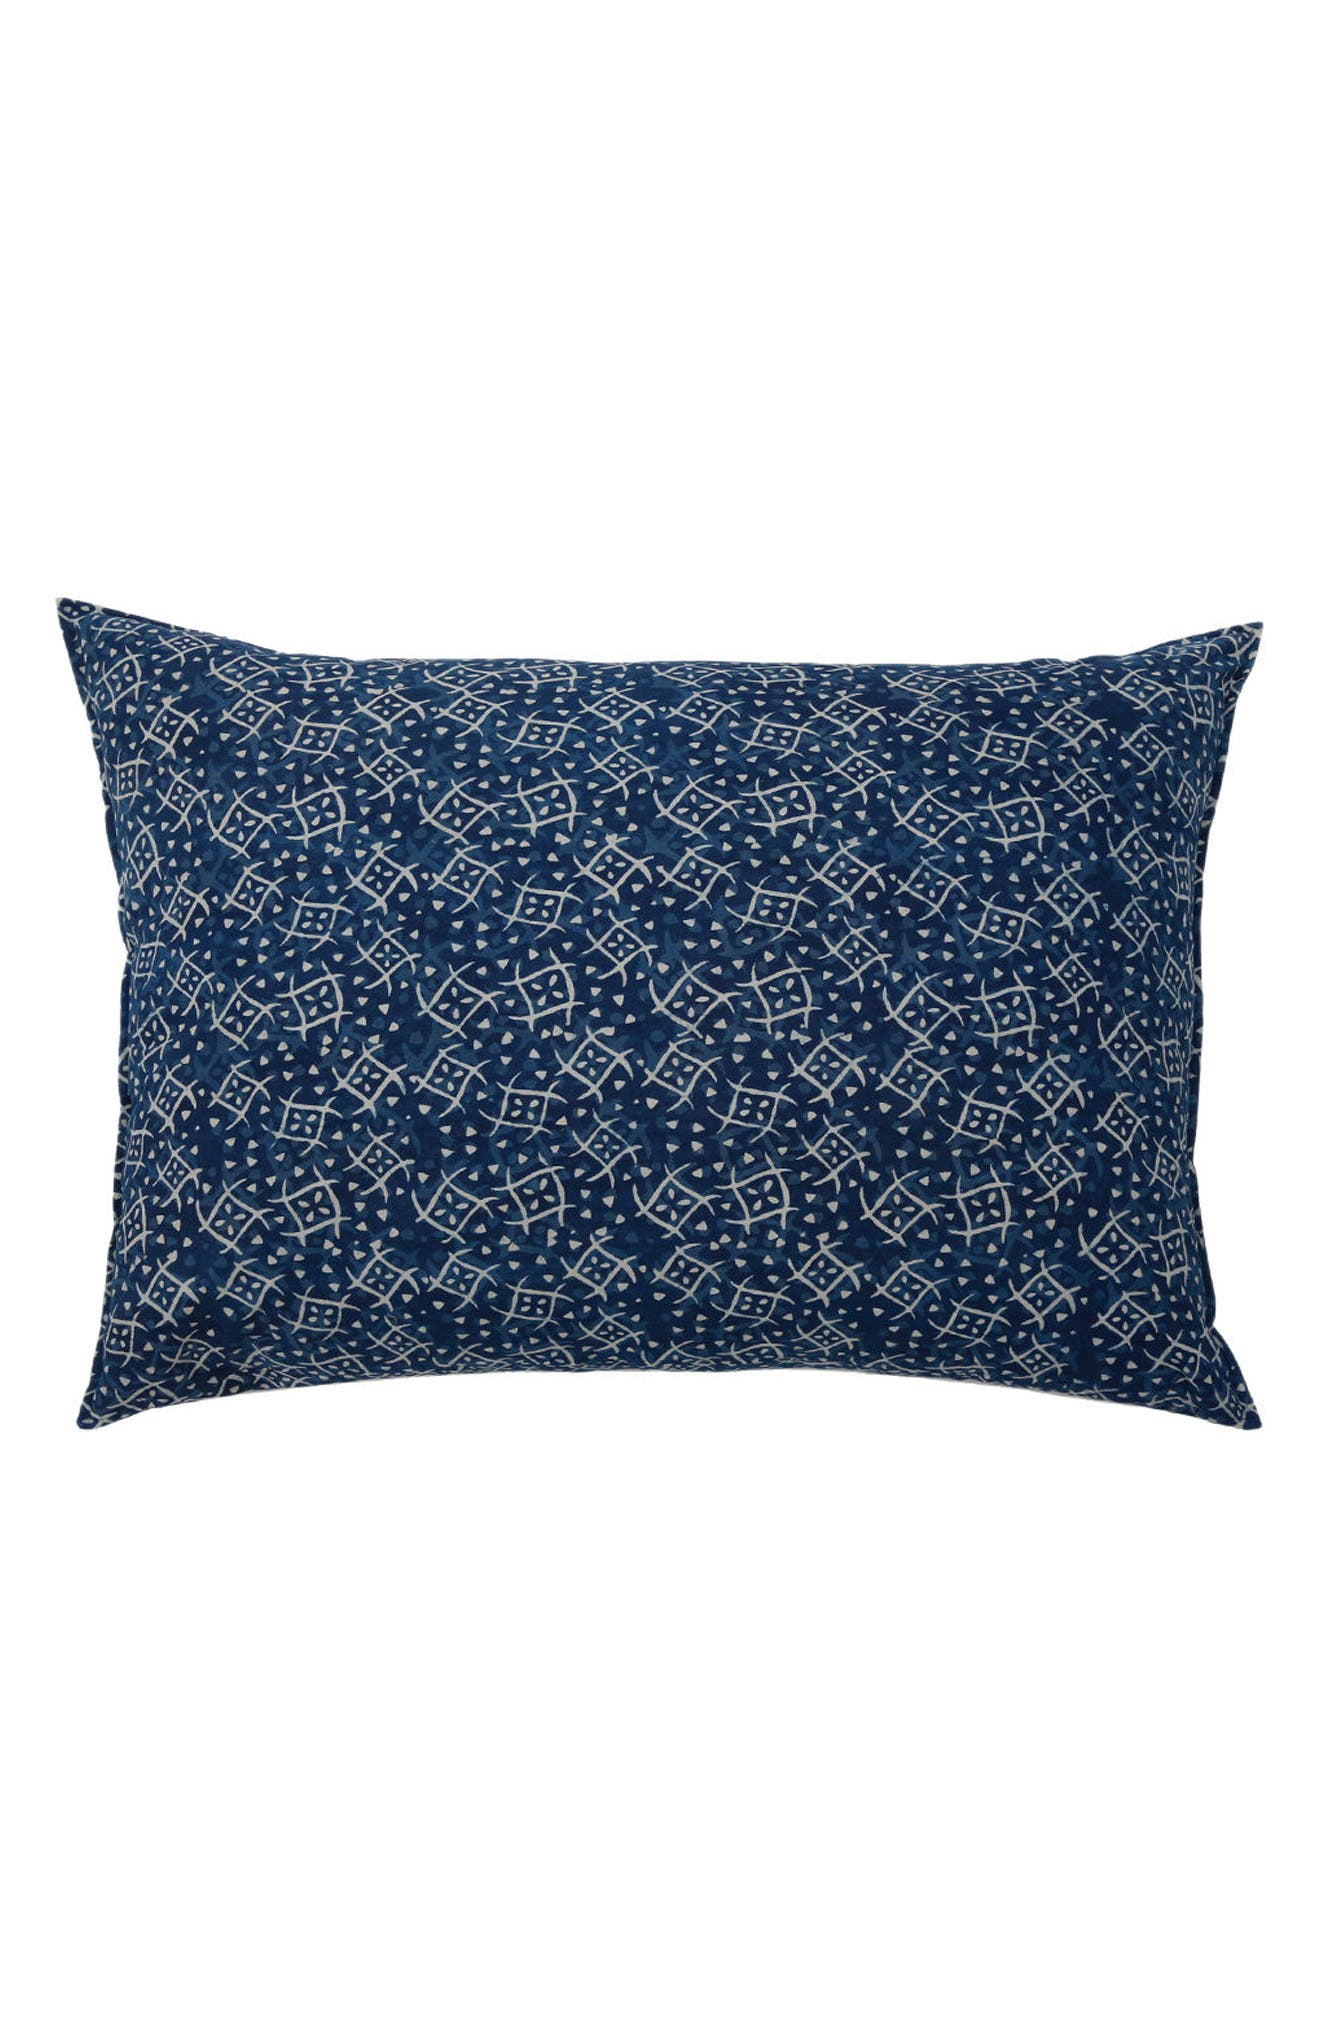 Alternate Image 1 Selected - Pom Pom at Home Neela Big Accent Pillow